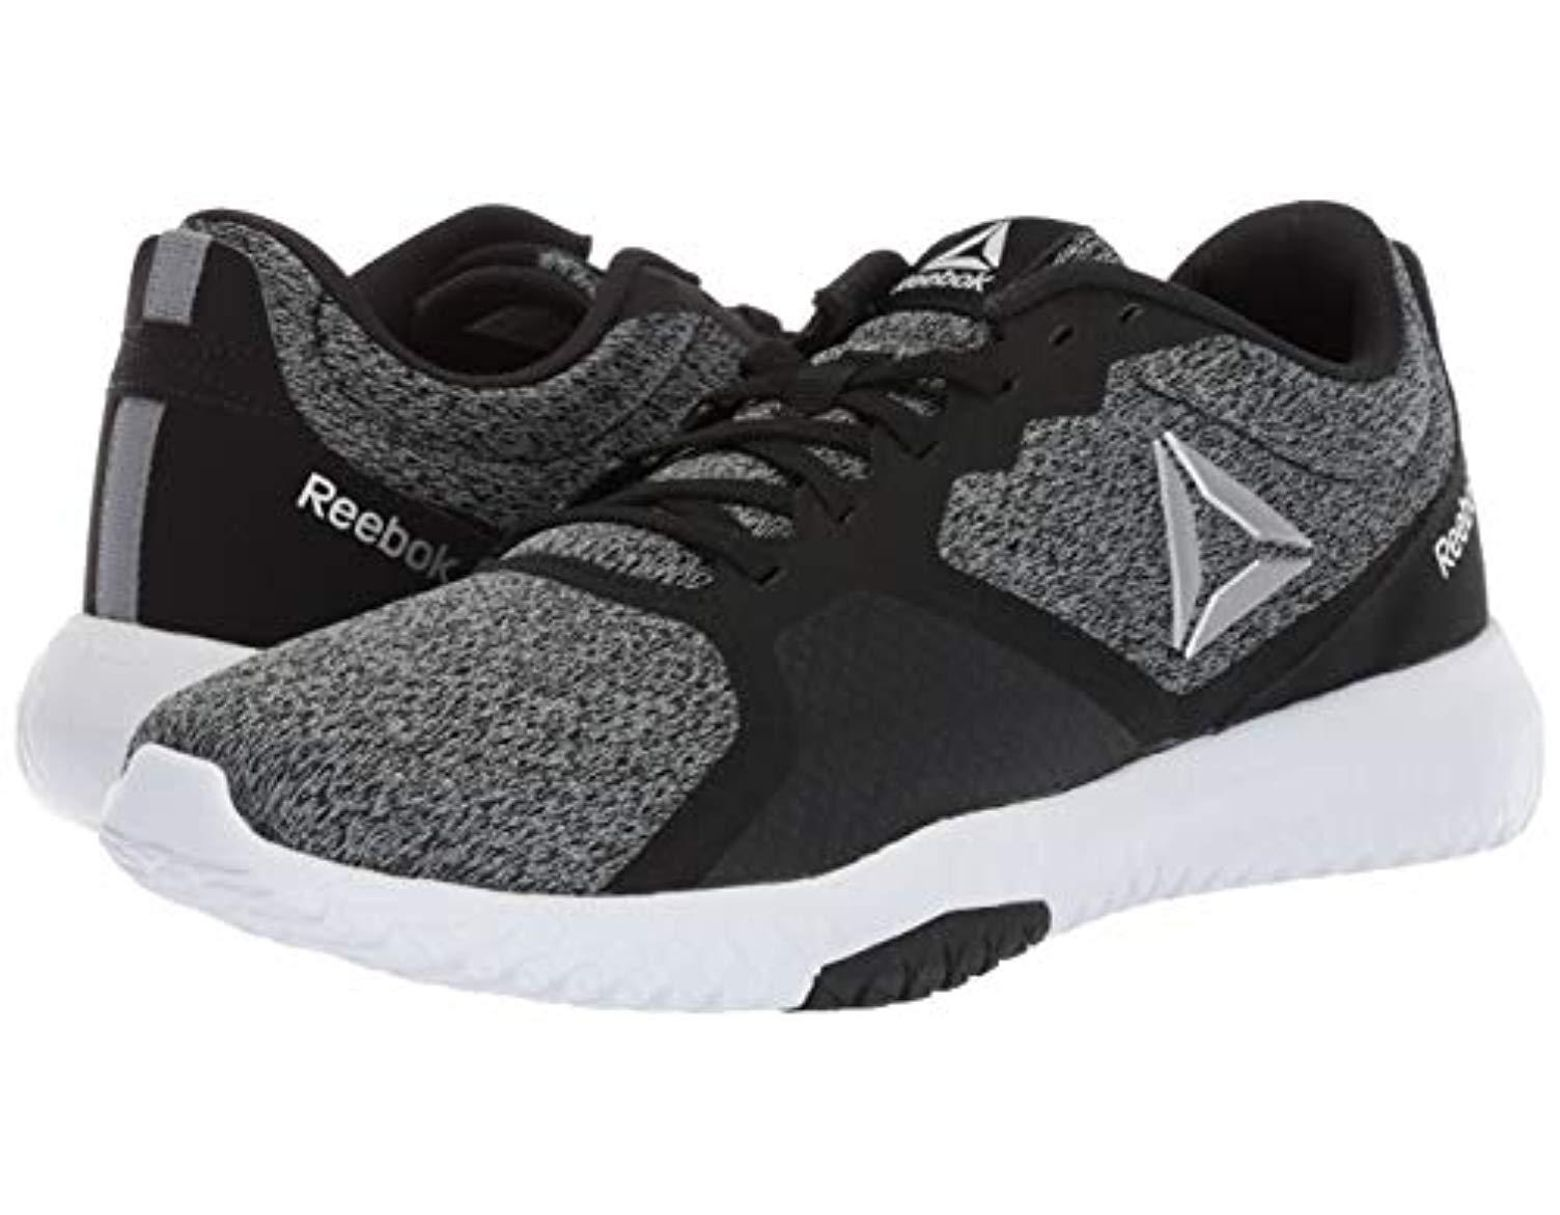 806cd9dbfb6d reebok-BlackTrue-GreyWhiteSilver-Flexagon-Force-Cross-Trainer.jpeg